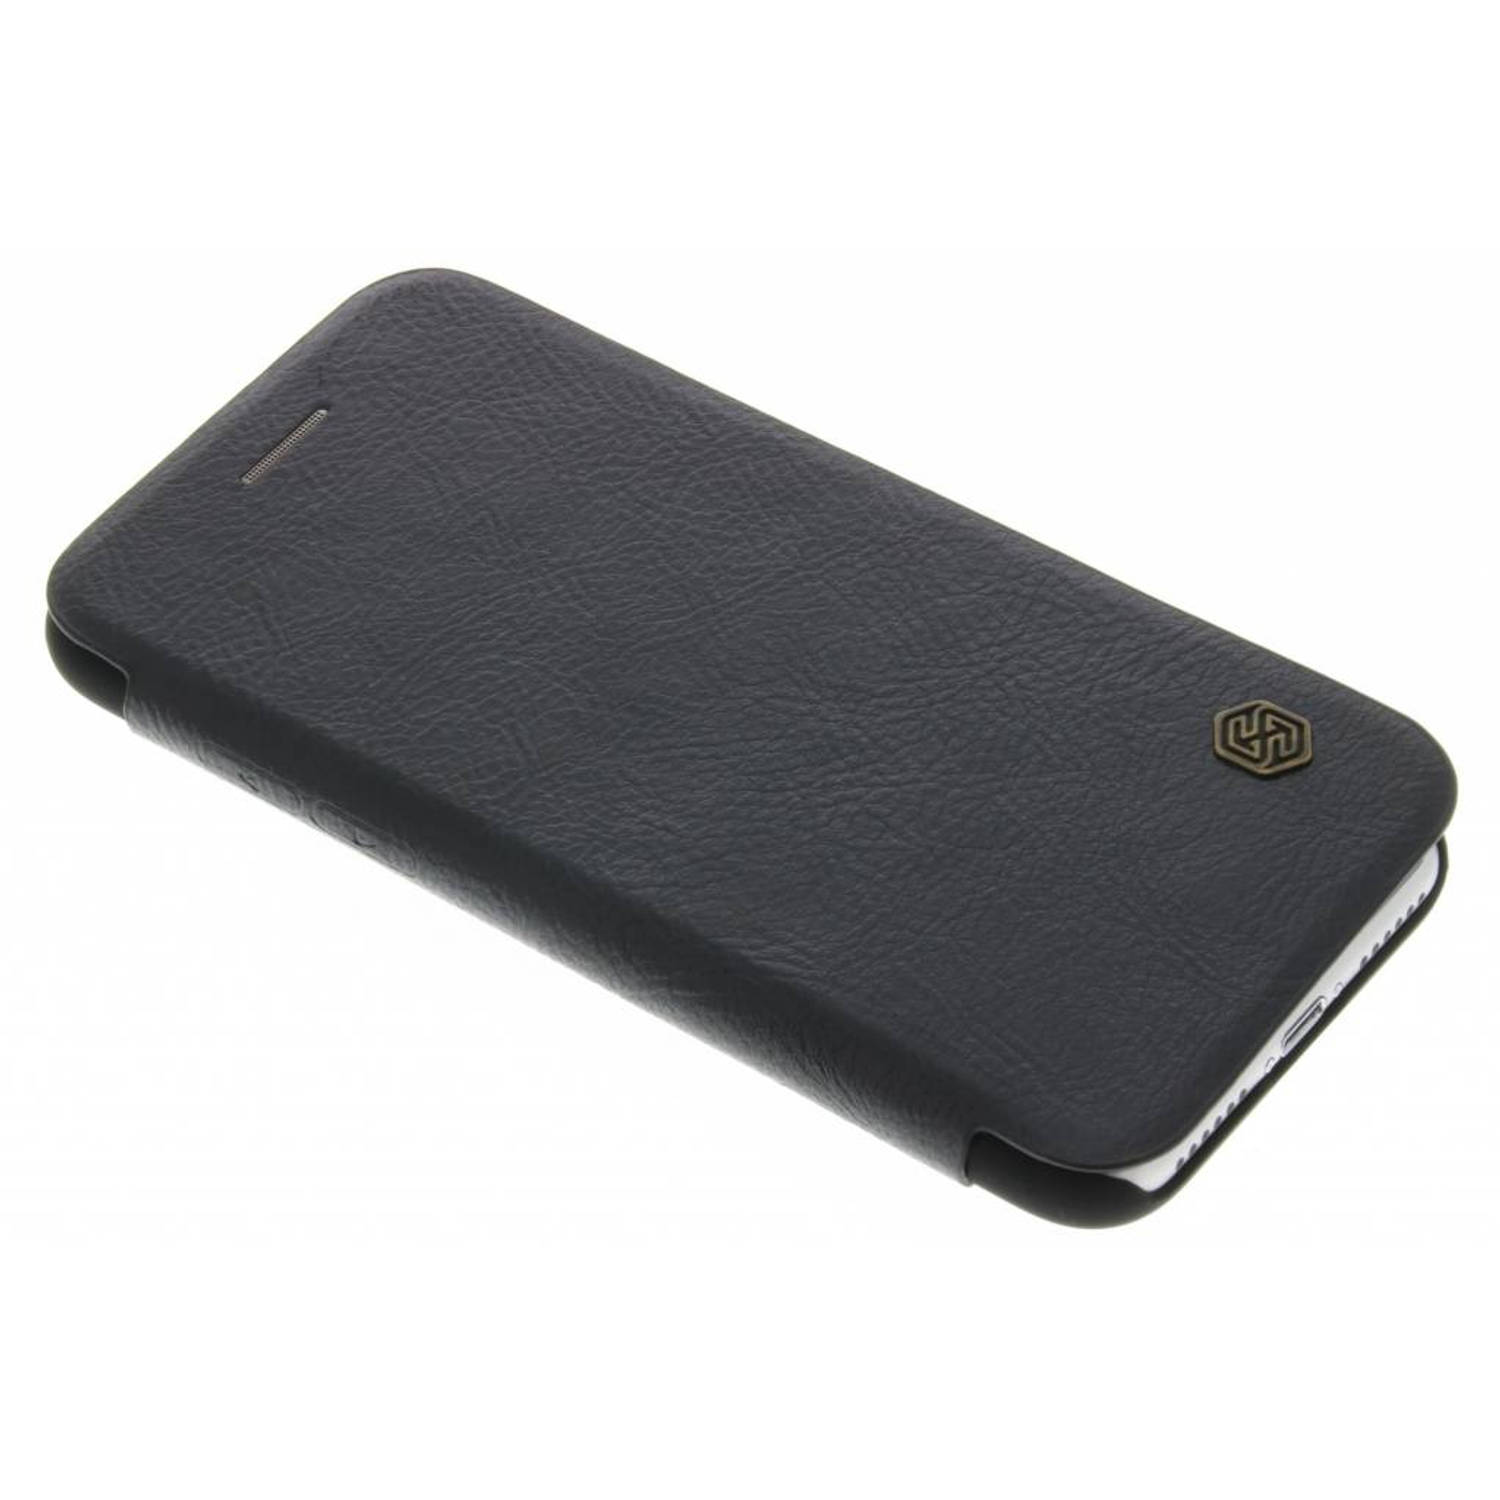 Qin Leather slim booktype hoes voor de iPhone 8 / 7 - Zwart